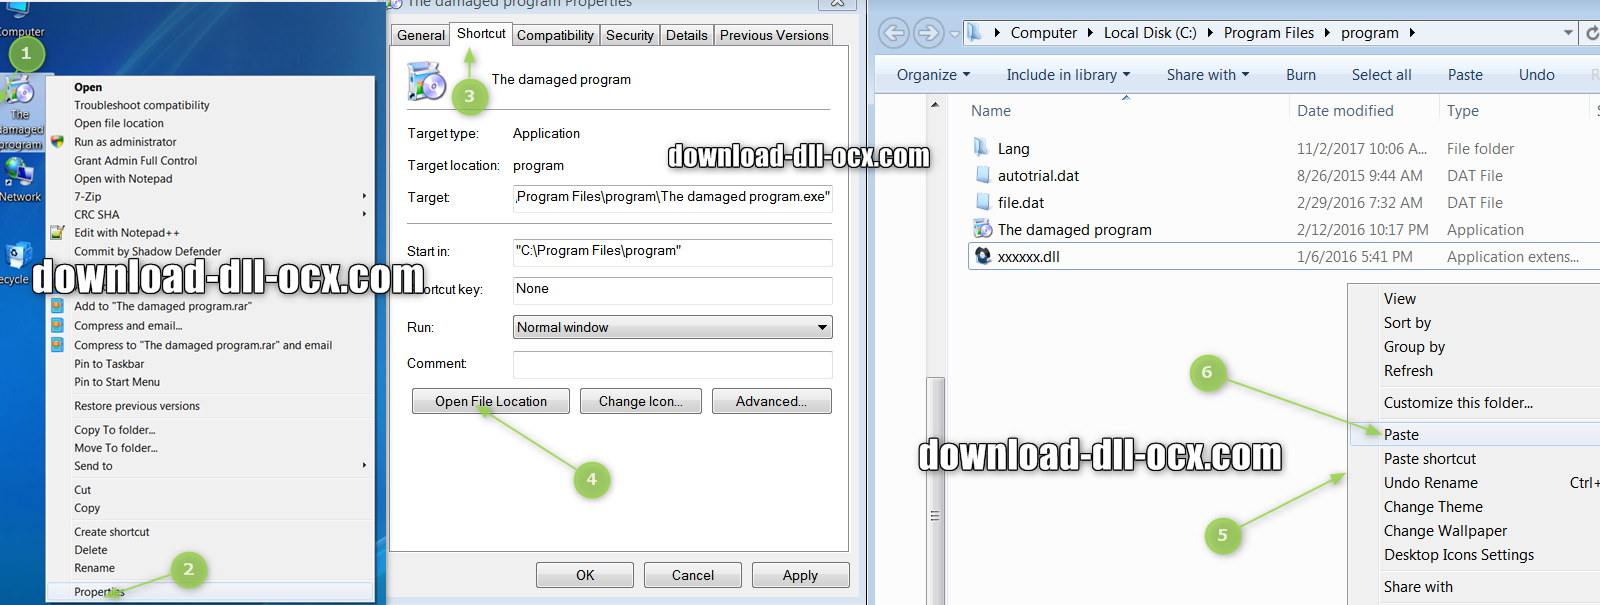 how to install pxcj3260.dll file? for fix missing